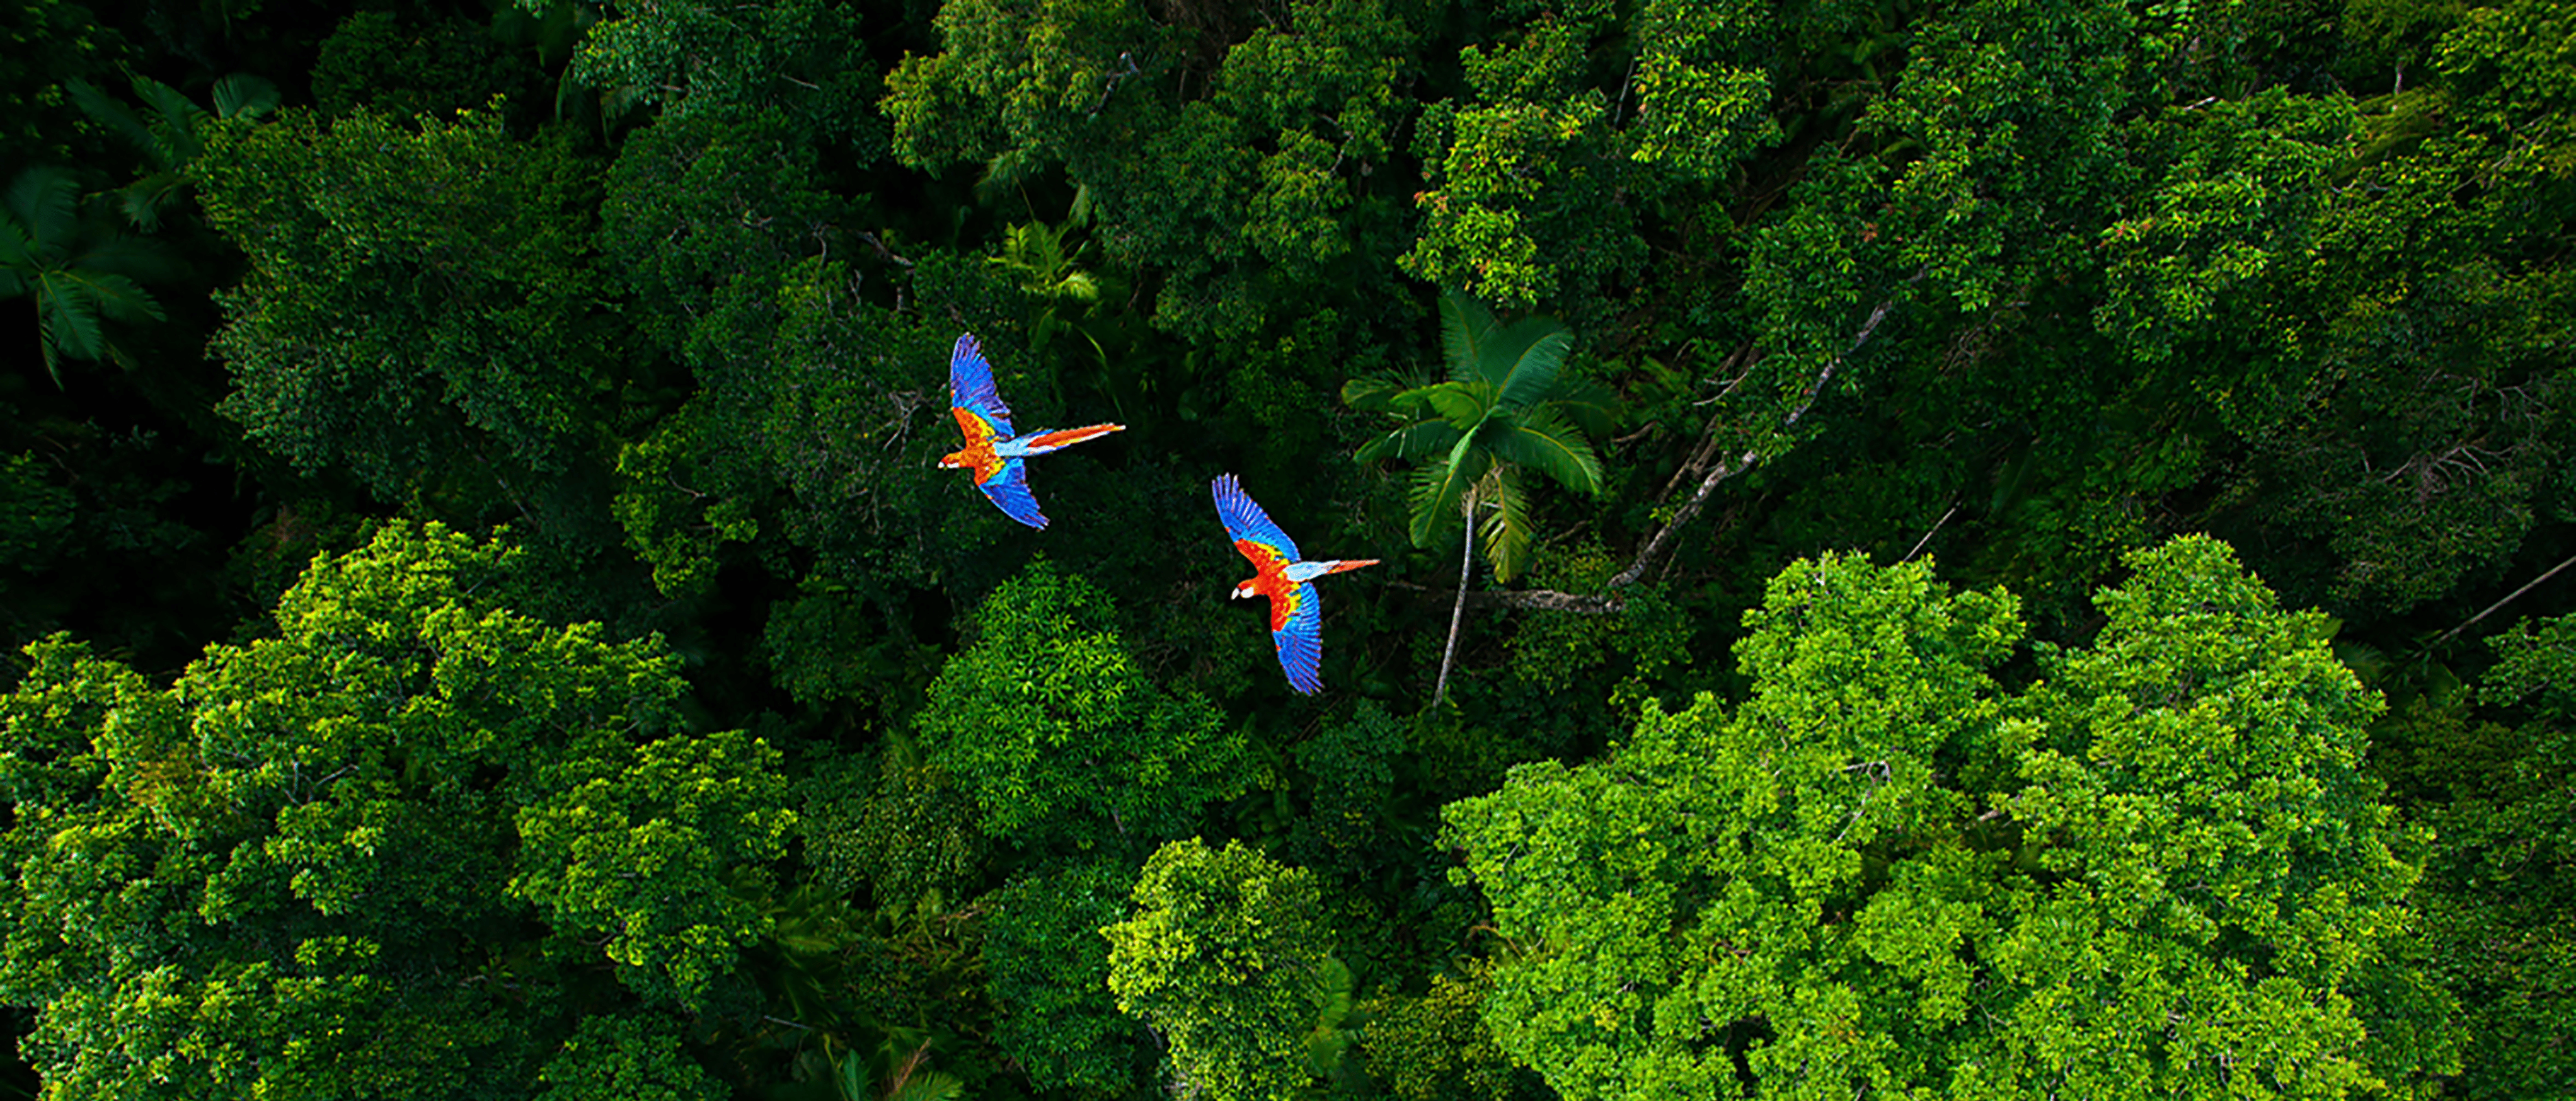 An ariel view over a dark green canopy of trees with two Festive Amazon Blue and Yellow Macaws flying across the middle.